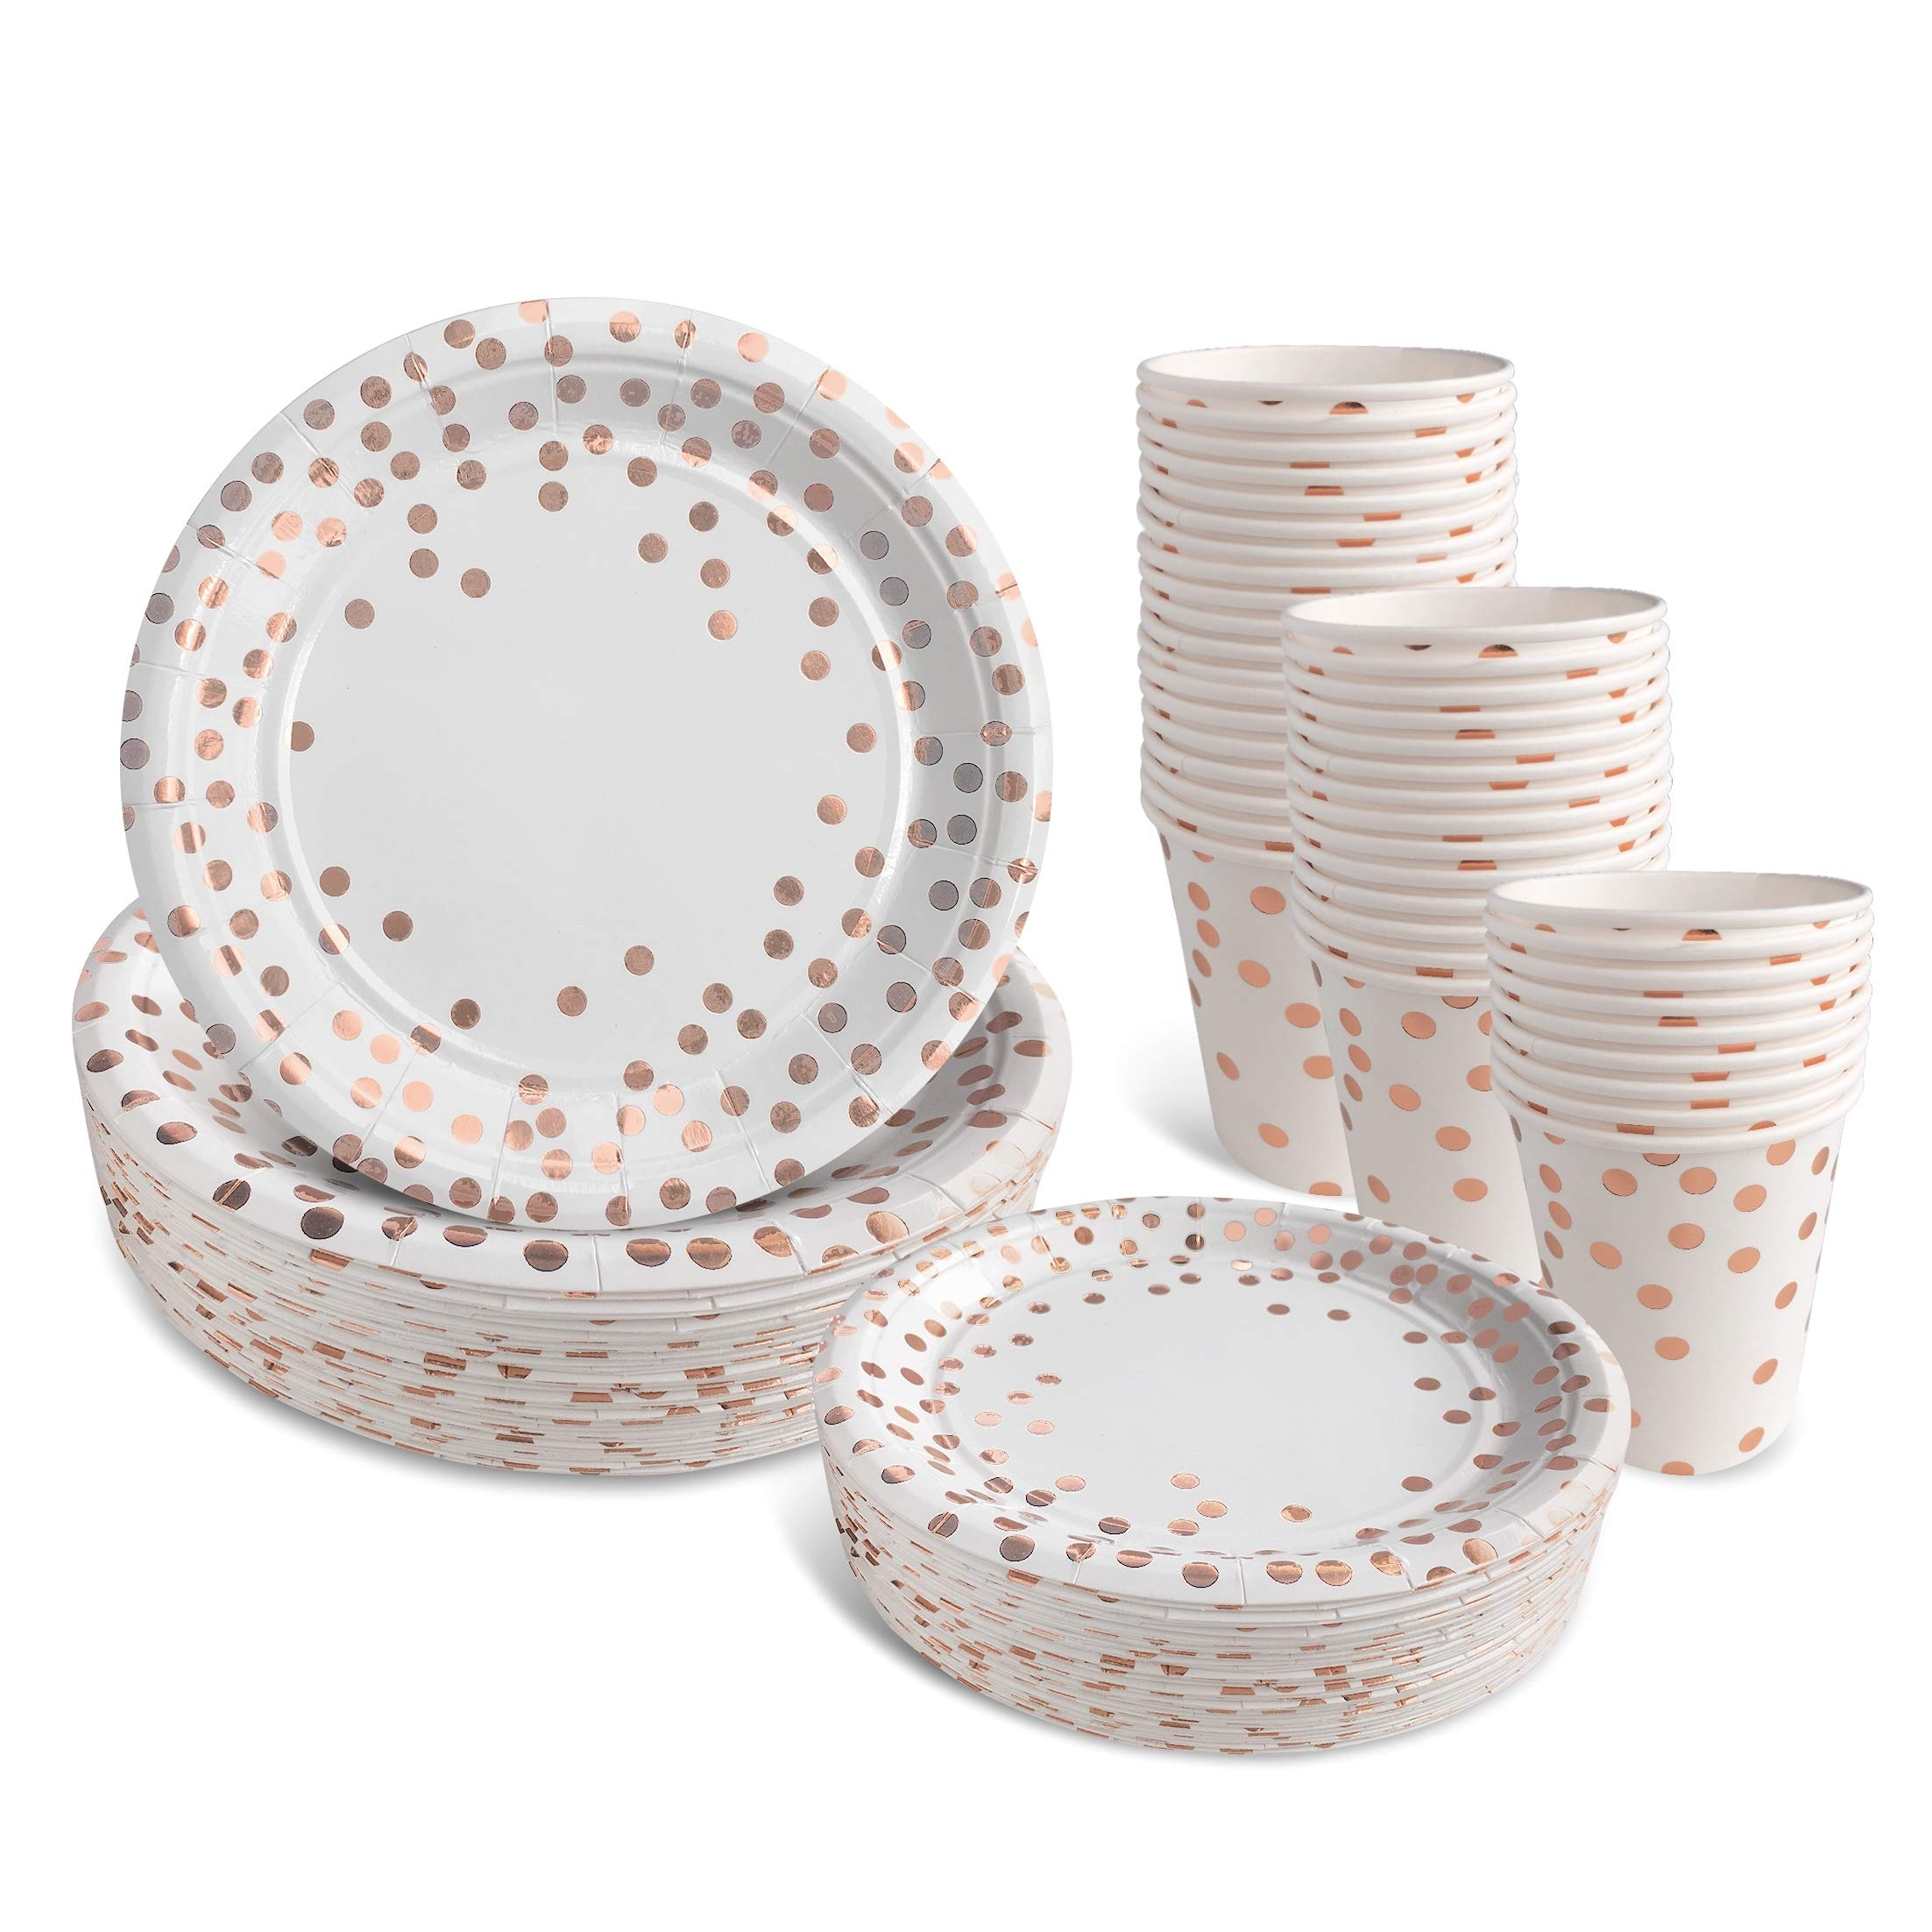 Fegodi Rose Gold Paper Plates and Cups Set for 50 - Disposable Cups, Dinner Plates and Dessert Plates - Bridal Shower, Baby Shower, Wedding, Anniversary, Birthday Party Supplies - 150pcs